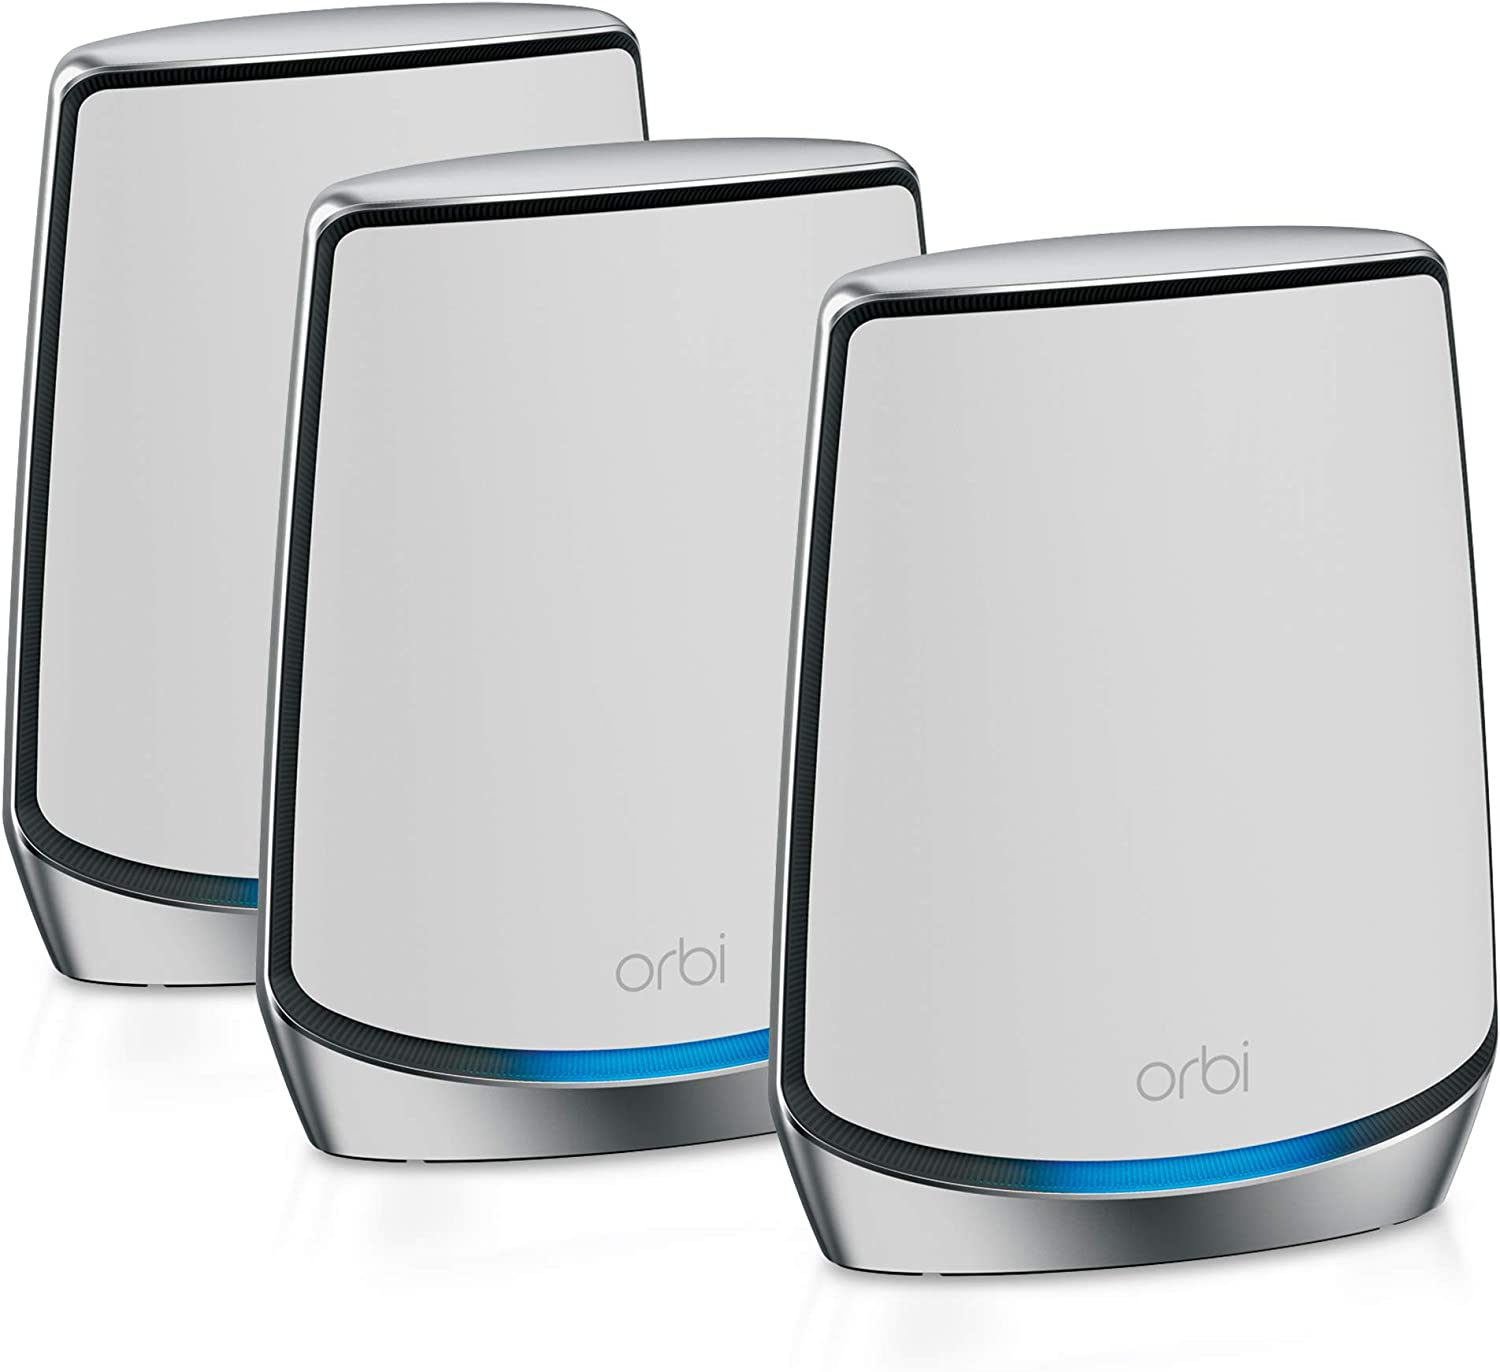 Netgear Orbi RBK50 vs. RBK852 vs. RBK853 Whole Home Tri-Band Mesh Wi-Fi Systems